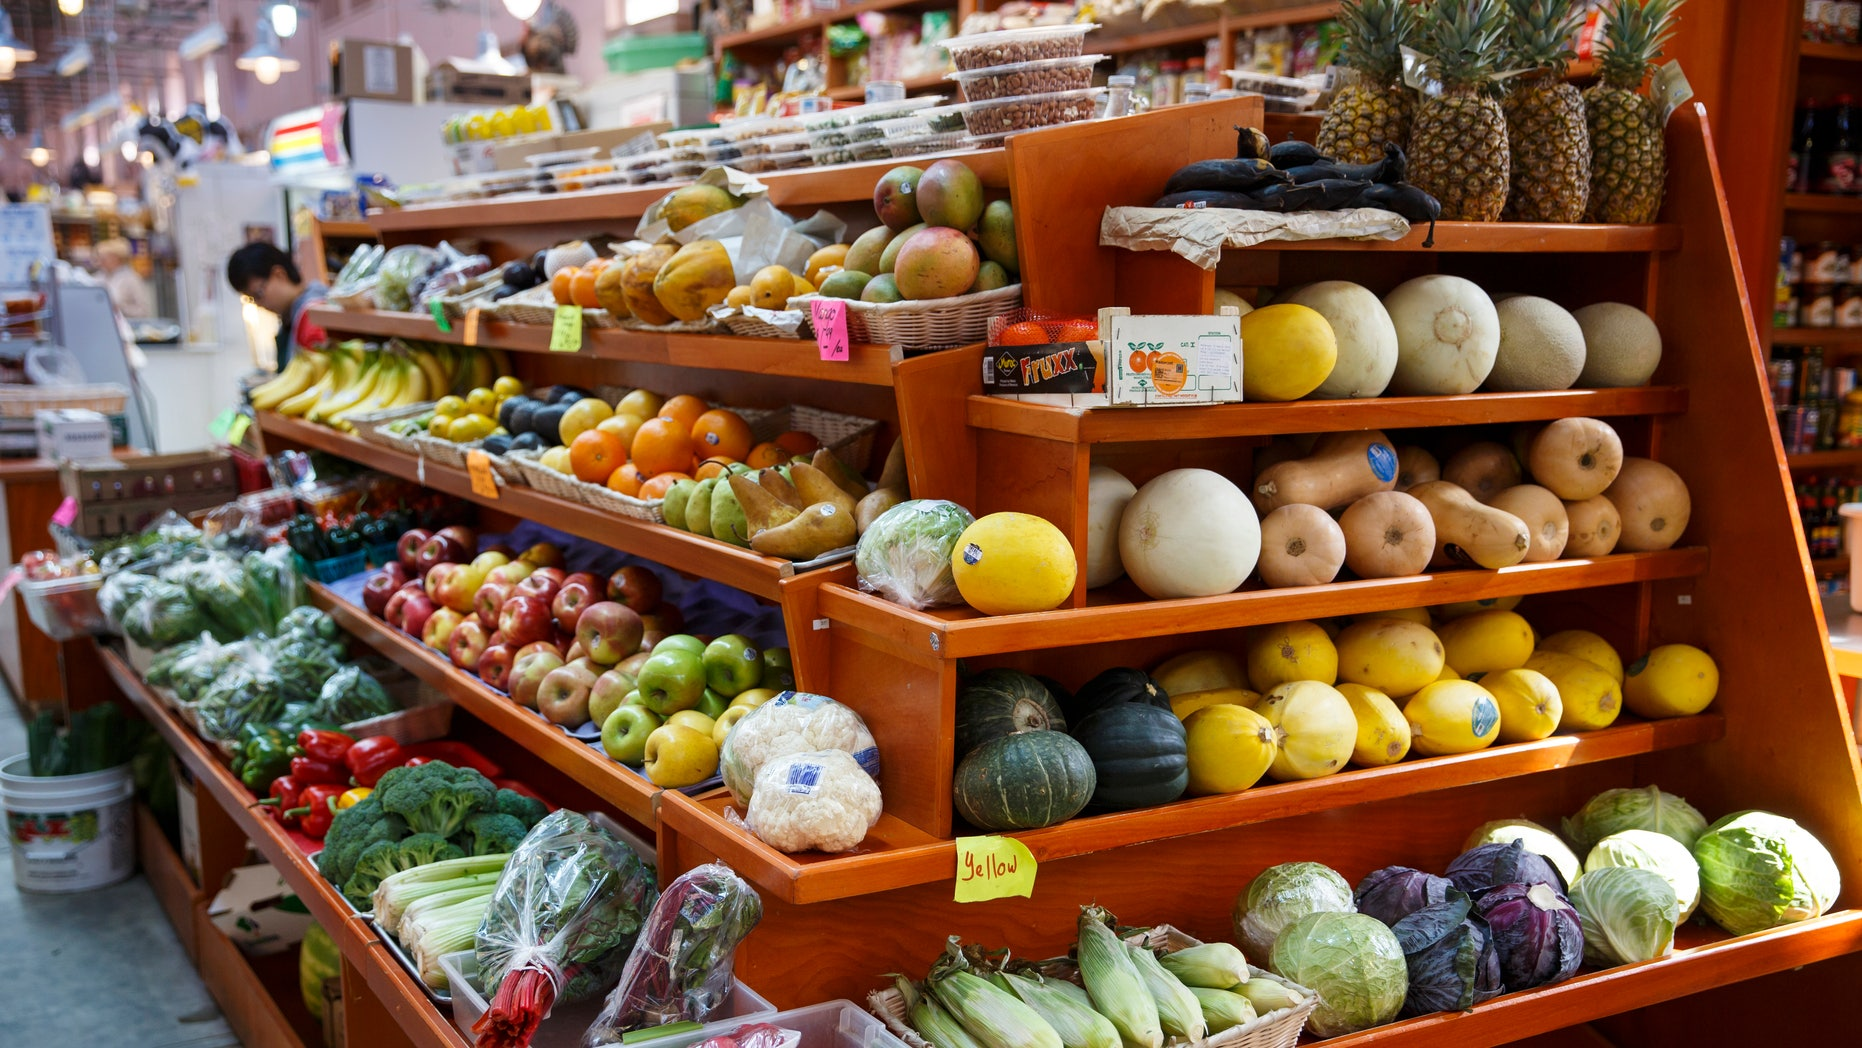 In this April 24, 2014 file photo, a variety of healthy fruits and vegetables are displayed for sale at a market in Washington. (AP Photo/J. Scott Applewhite, File)